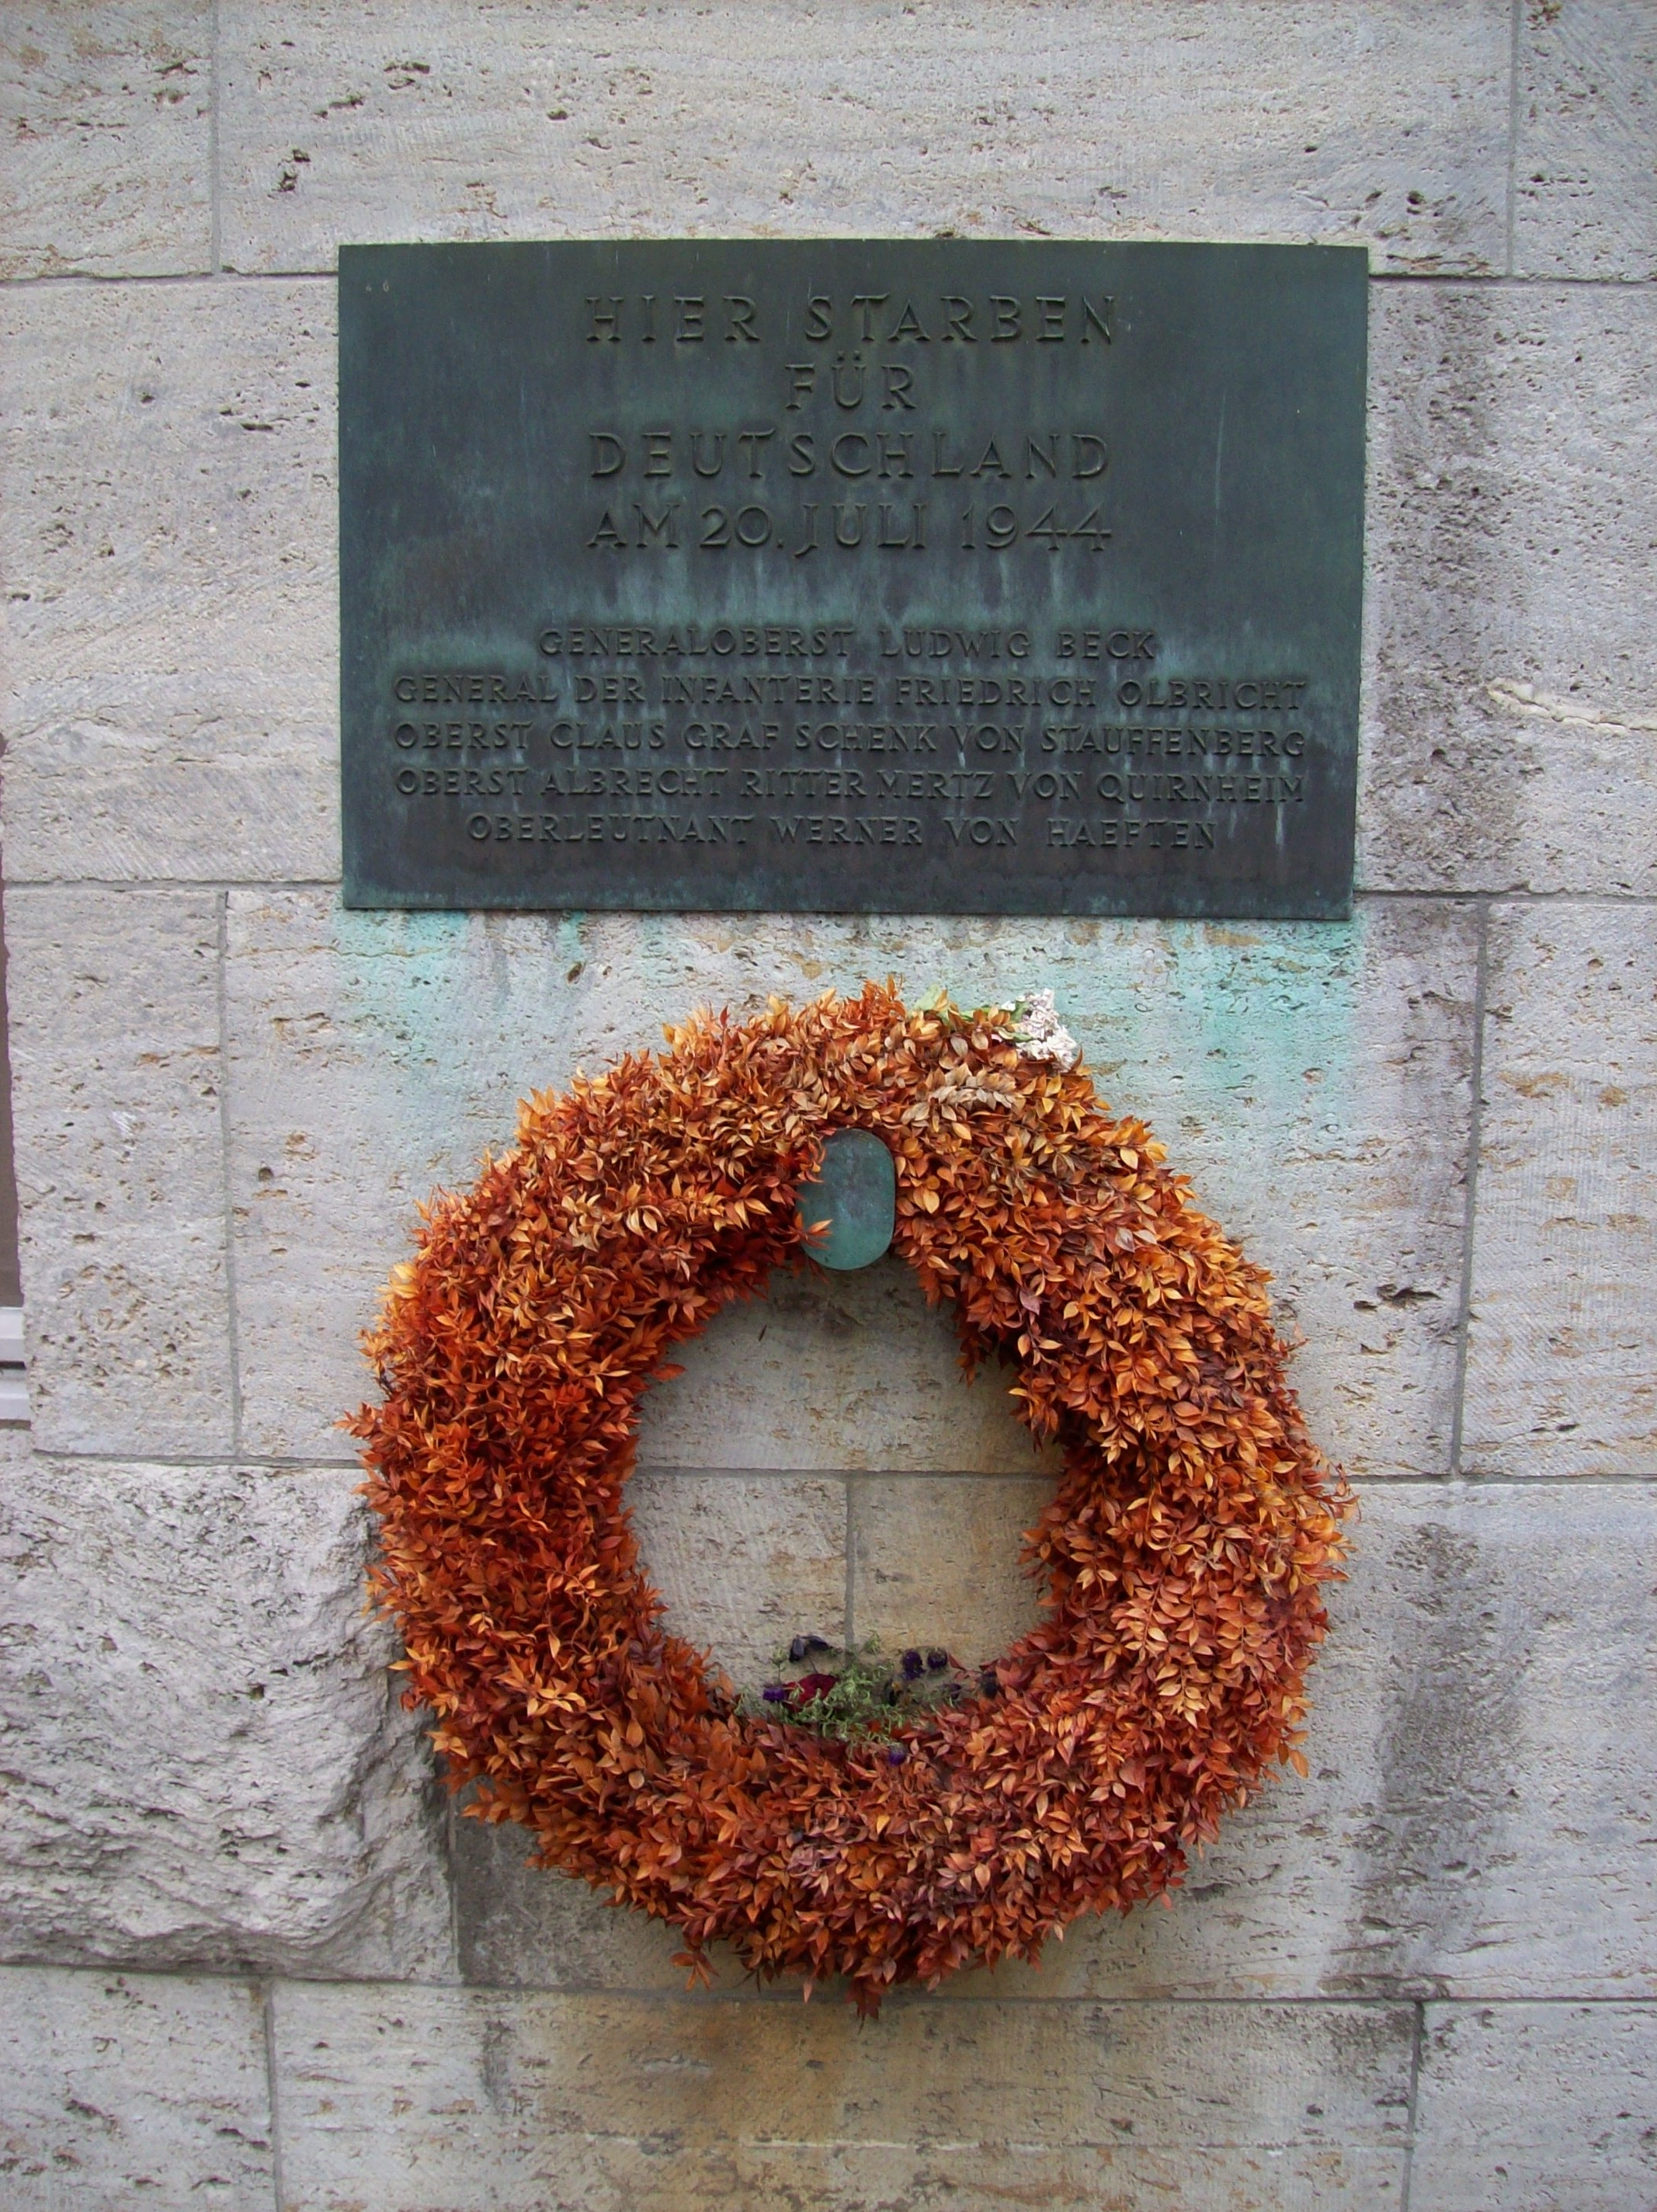 Bendlerblock Memorial